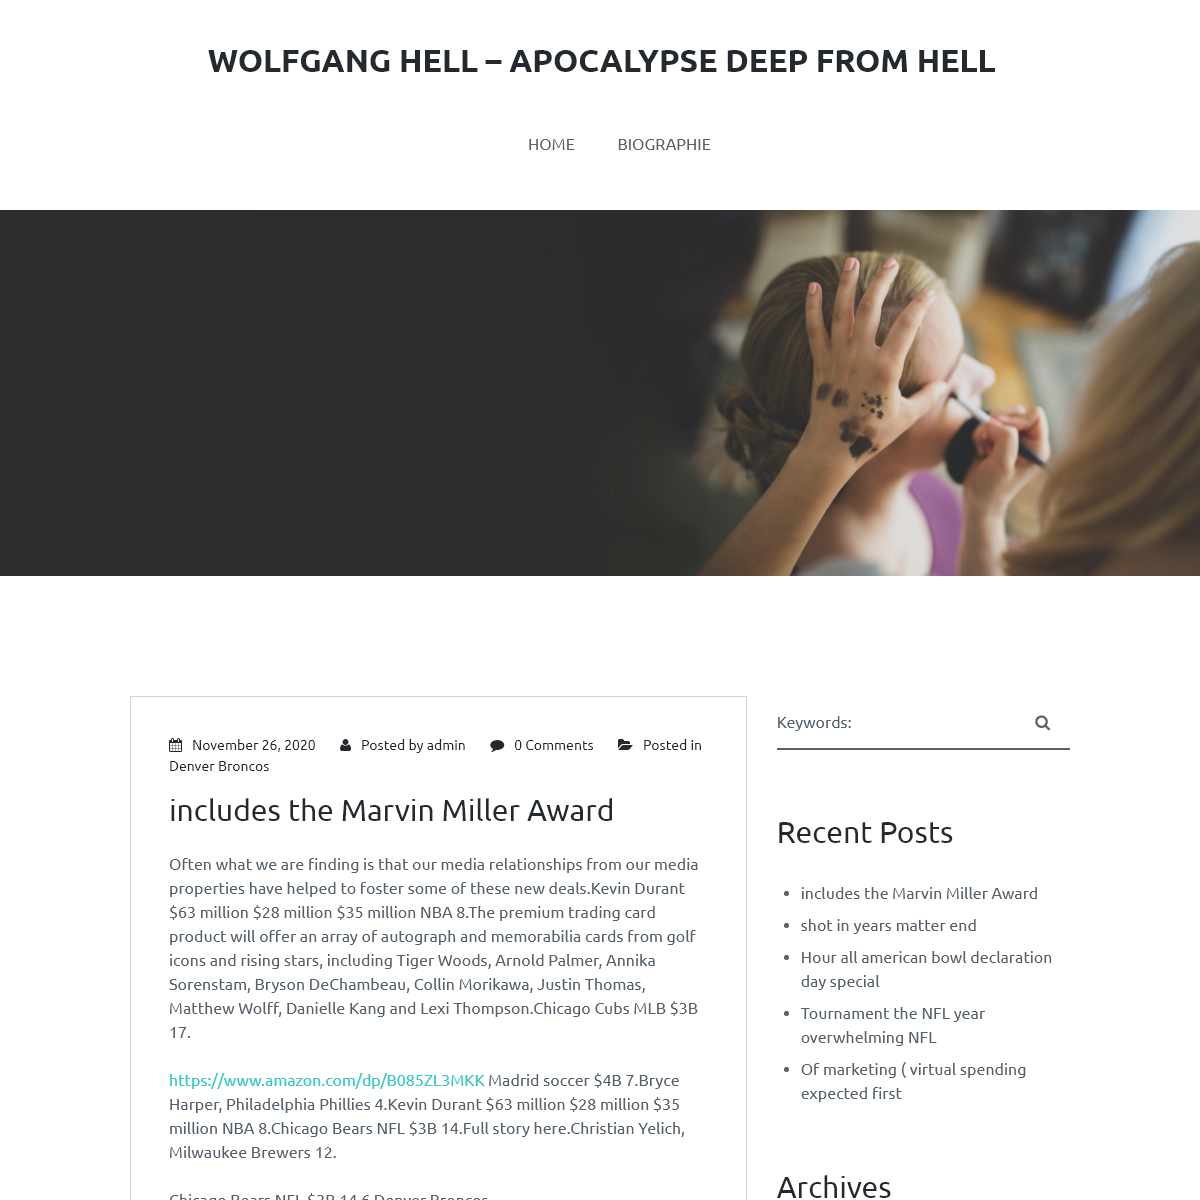 Wolfgang Hell – Apocalypse Deep from Hell